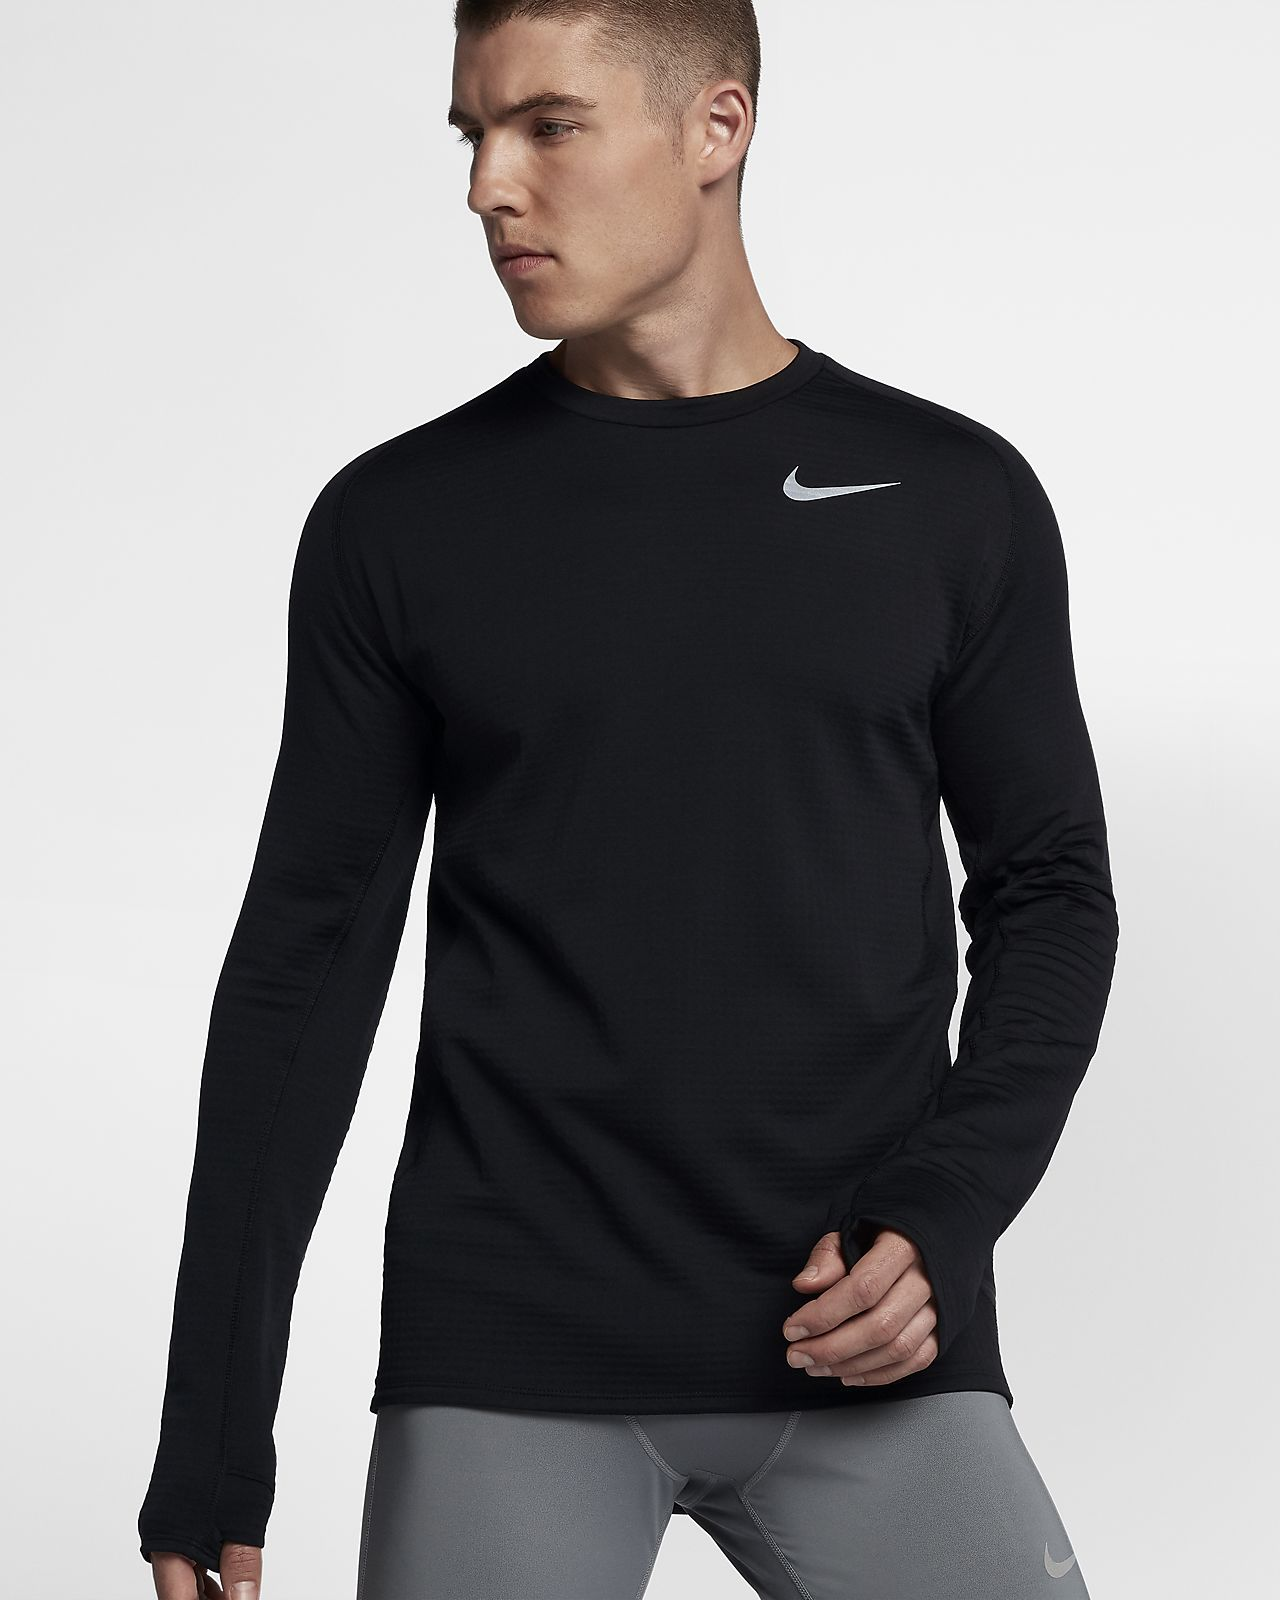 premium selection 167e8 4d2ea ... Nike Therma-Sphere Element Men s Long-Sleeve Running Top